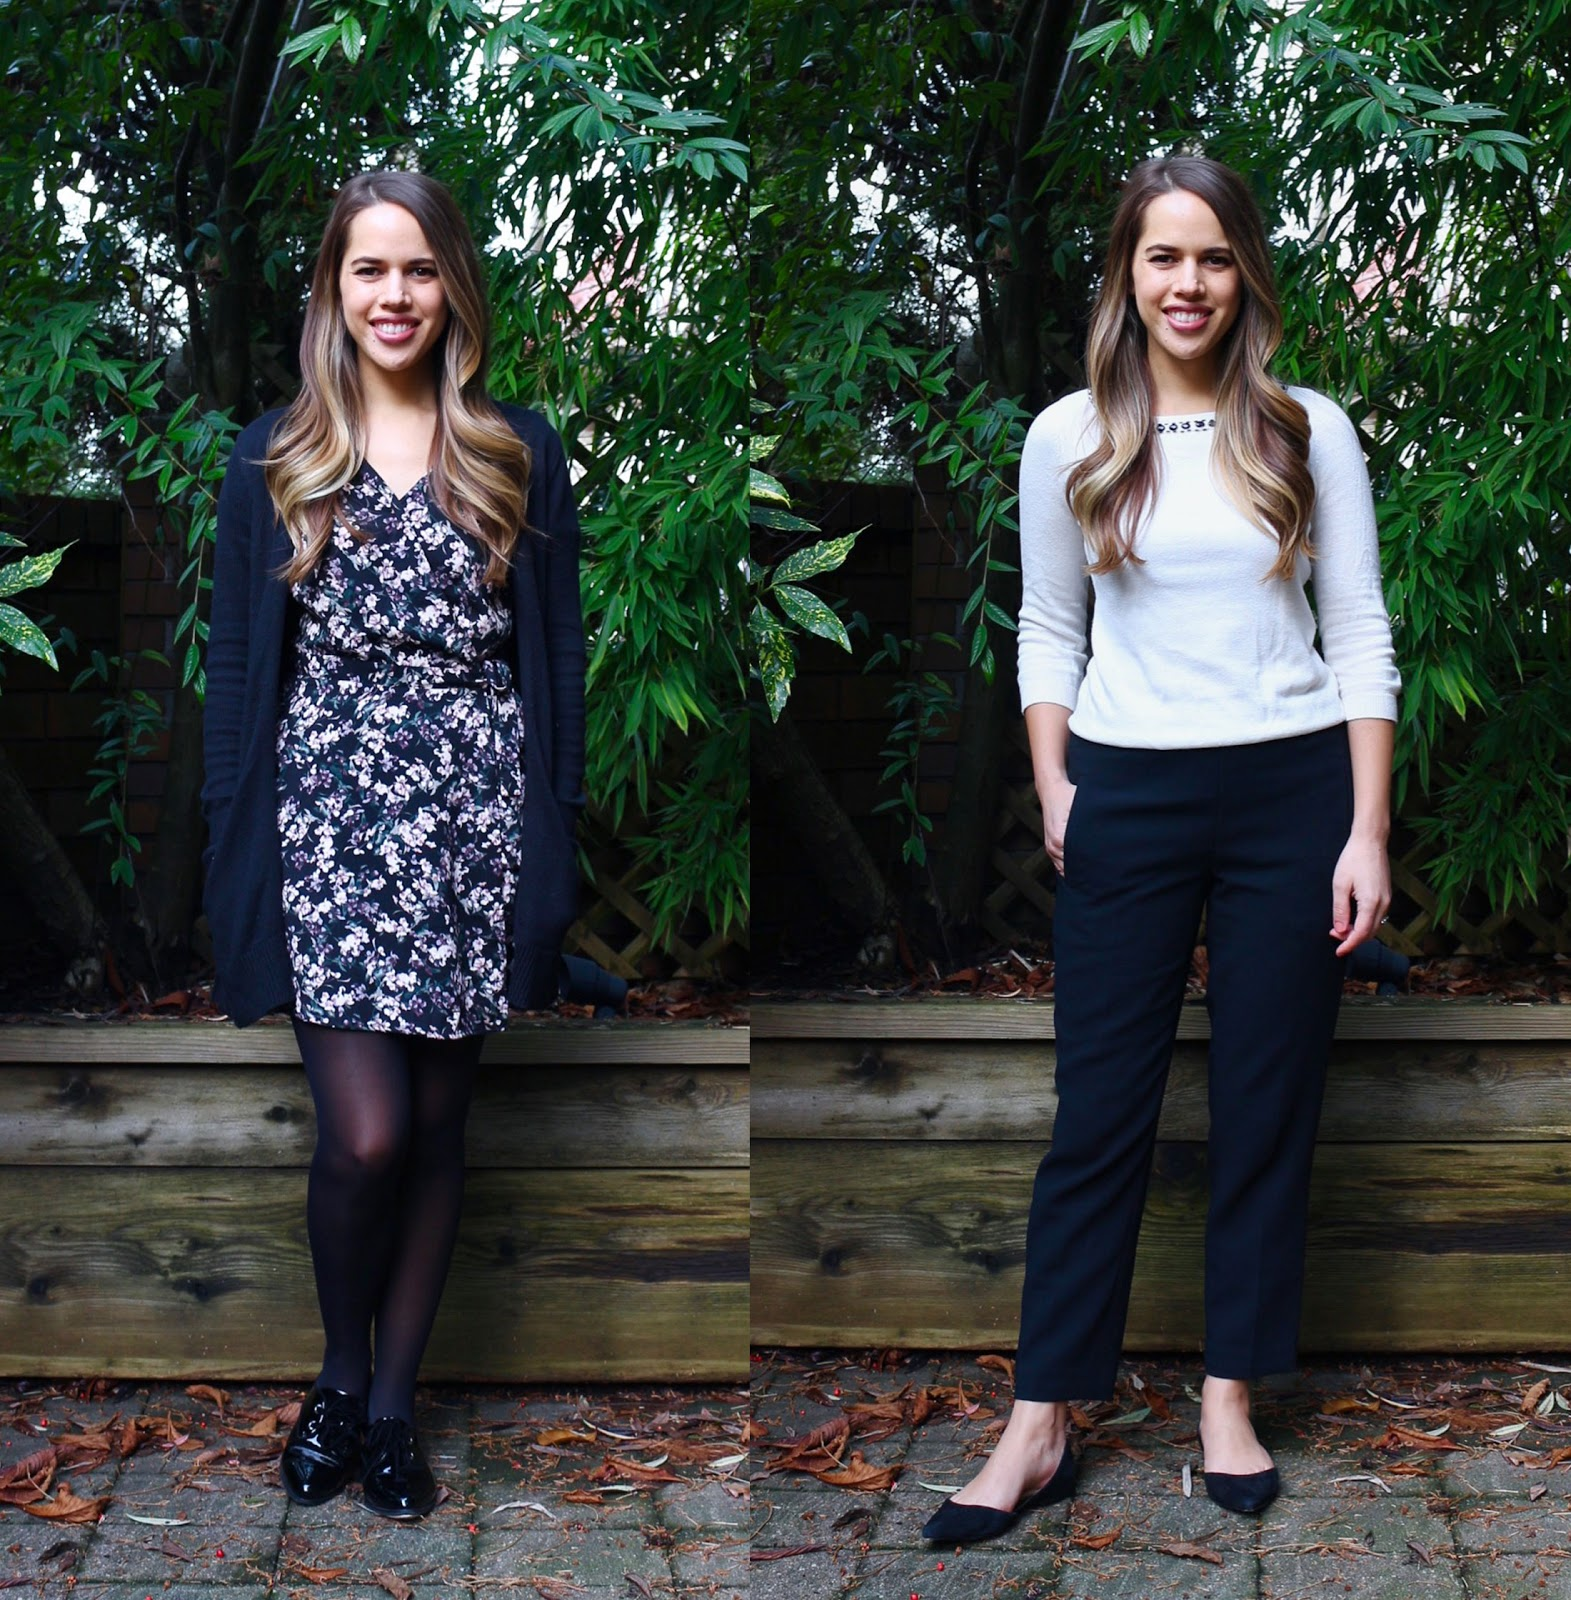 Jules in Flats - December Outfits (Business Casual Winter Workwear on a Budget)